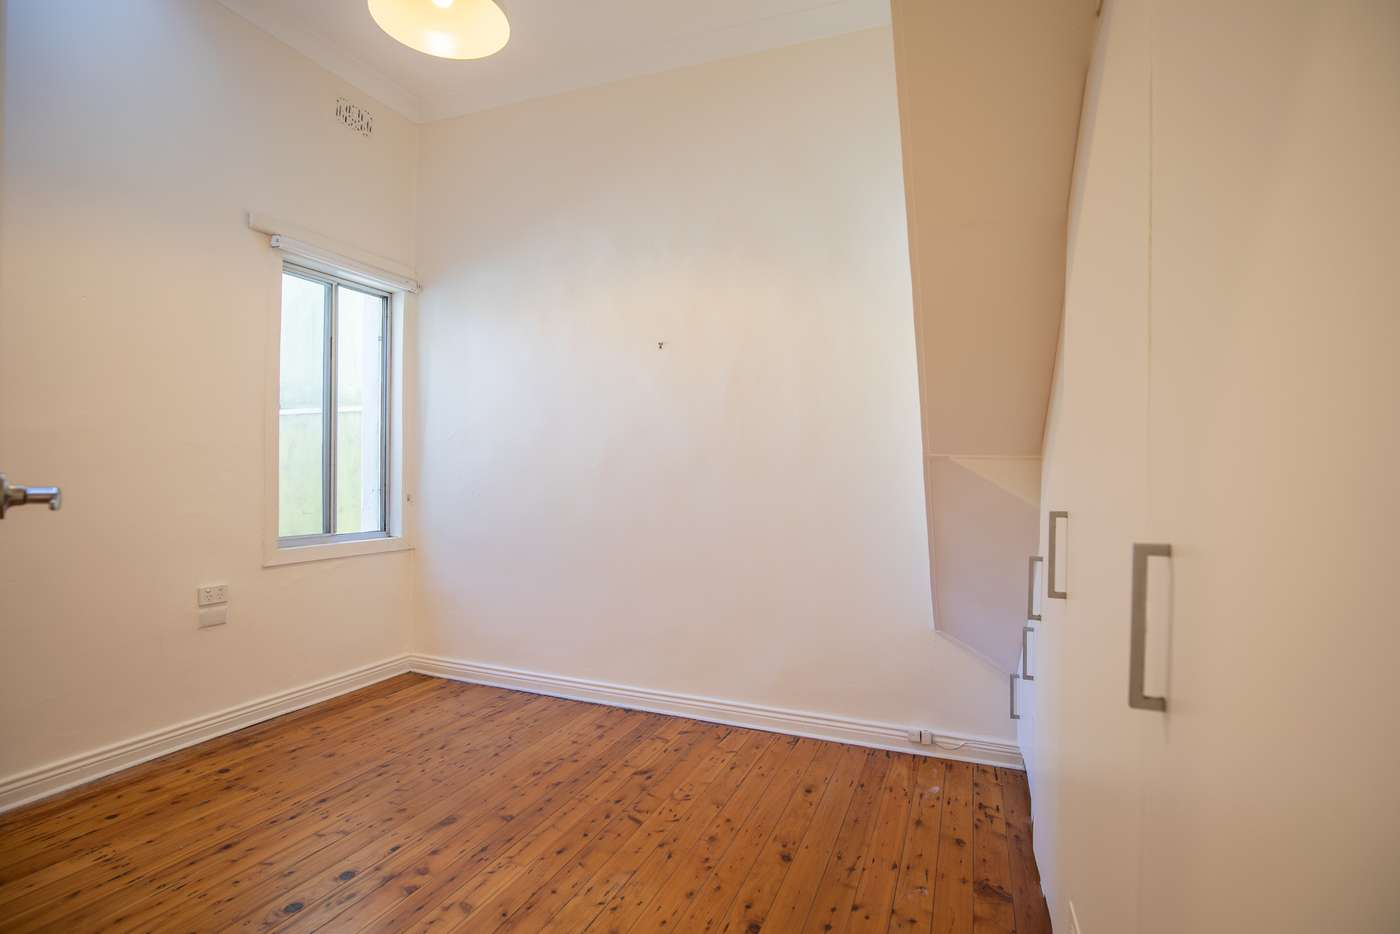 Sixth view of Homely house listing, 3 Cooper Street, Redfern NSW 2016